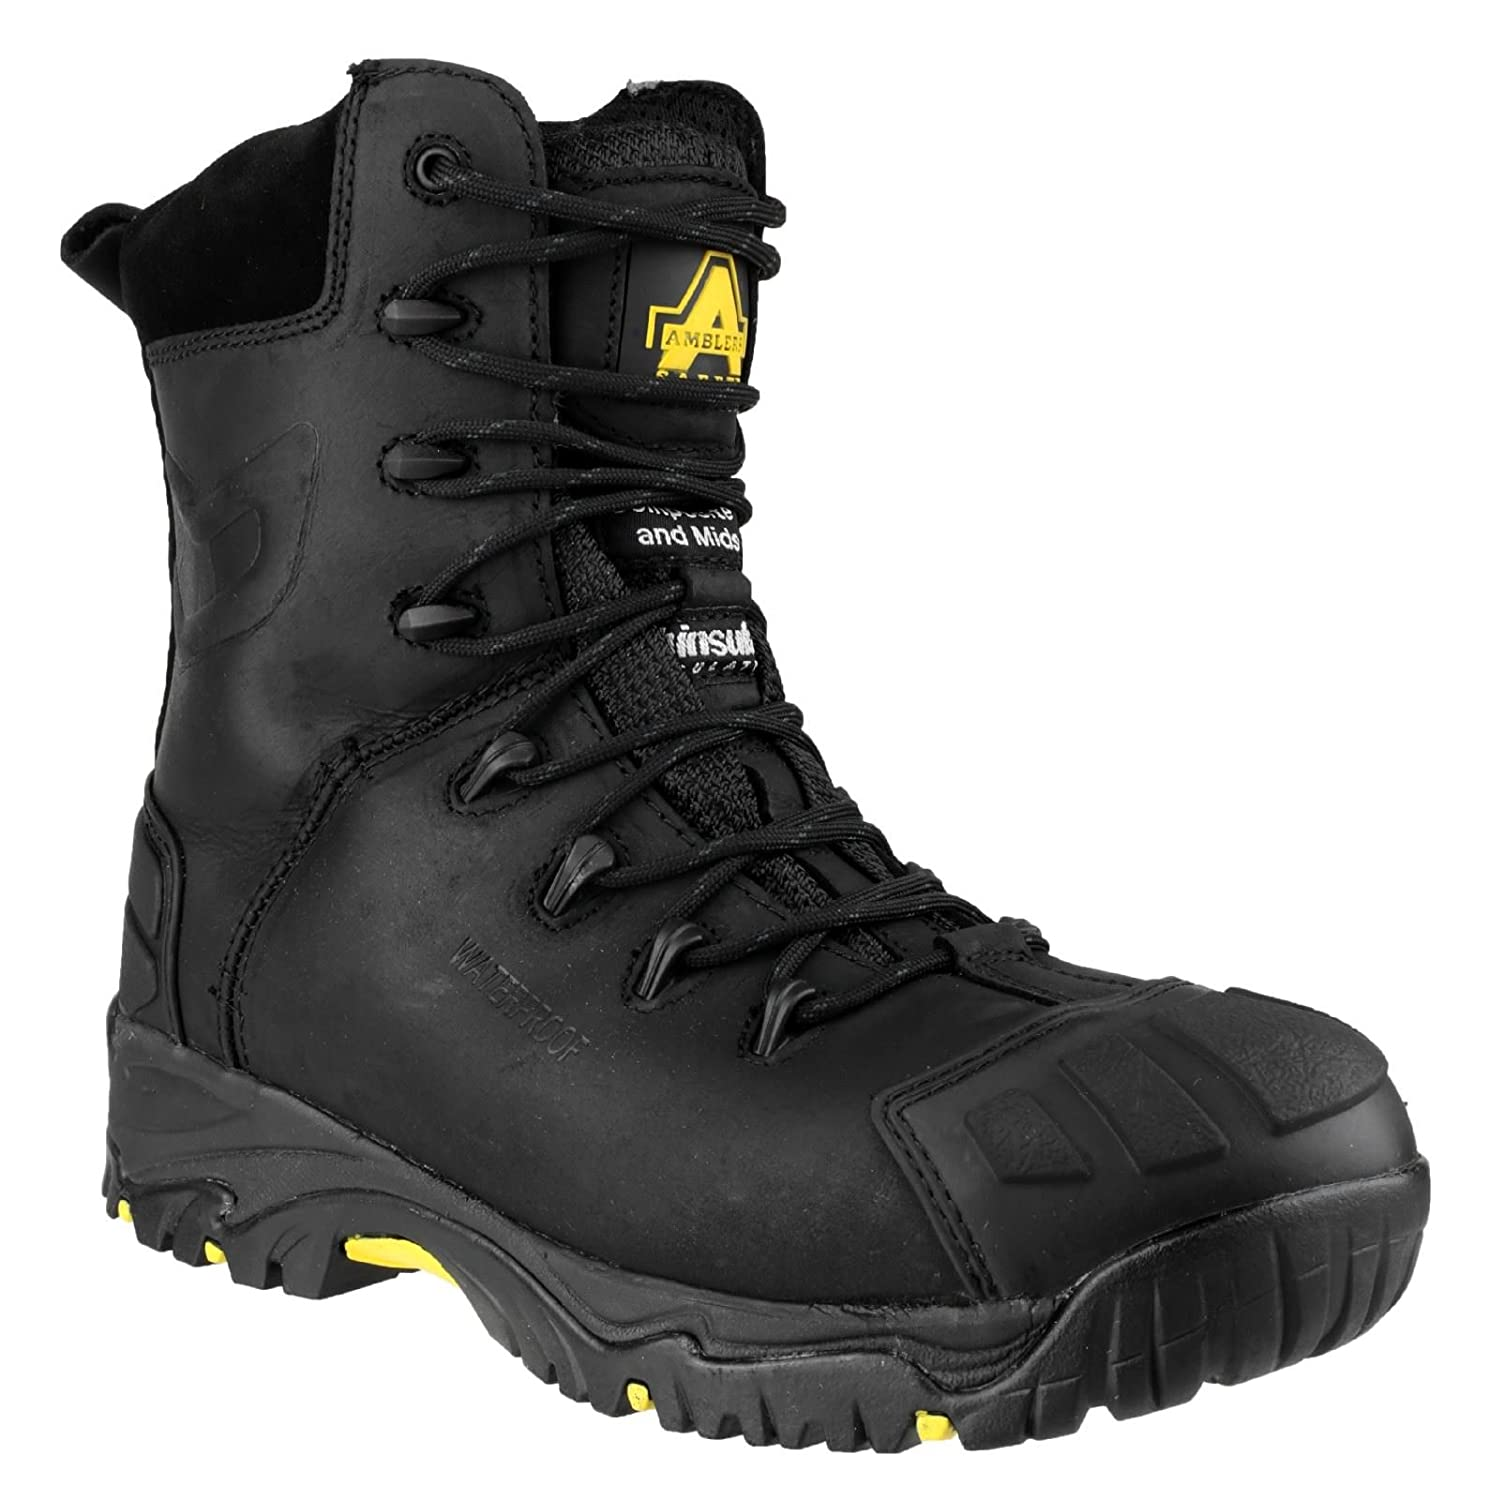 Amblers Steel Fs999 Safety Boot / Mens Boots / Boots Safety UX_5217